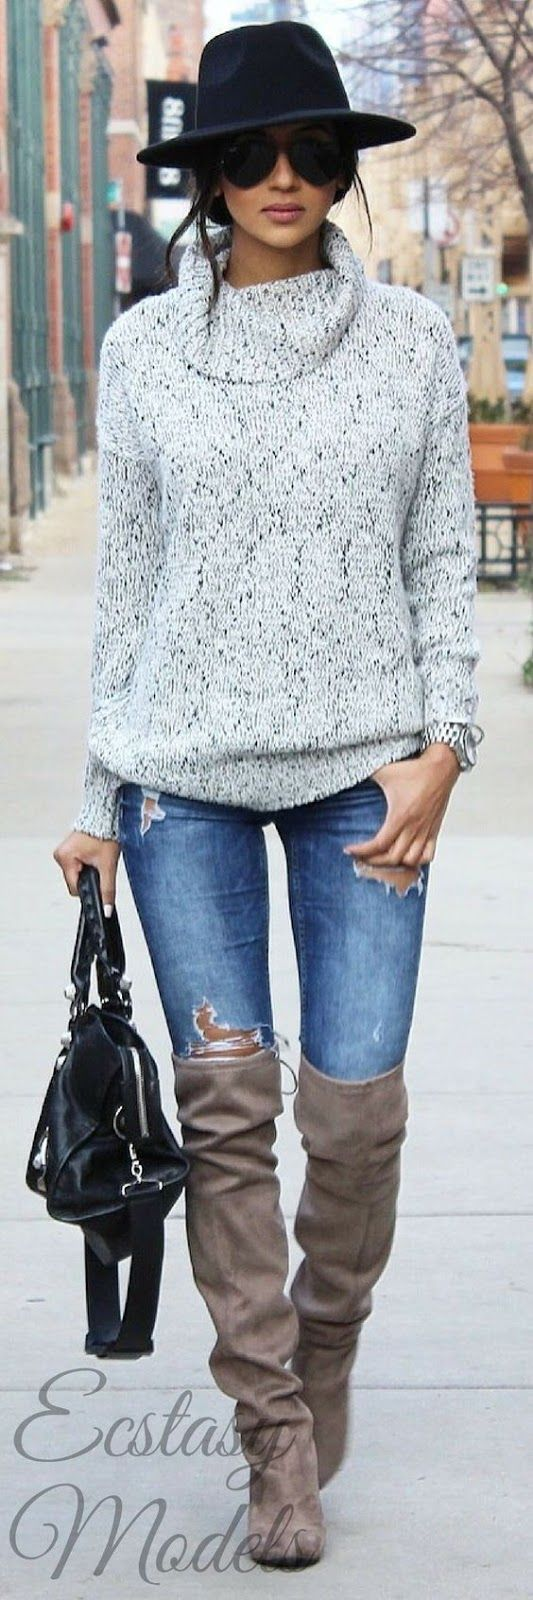 best 25+ comfortable winter outfits ideas on pinterest | cardigans